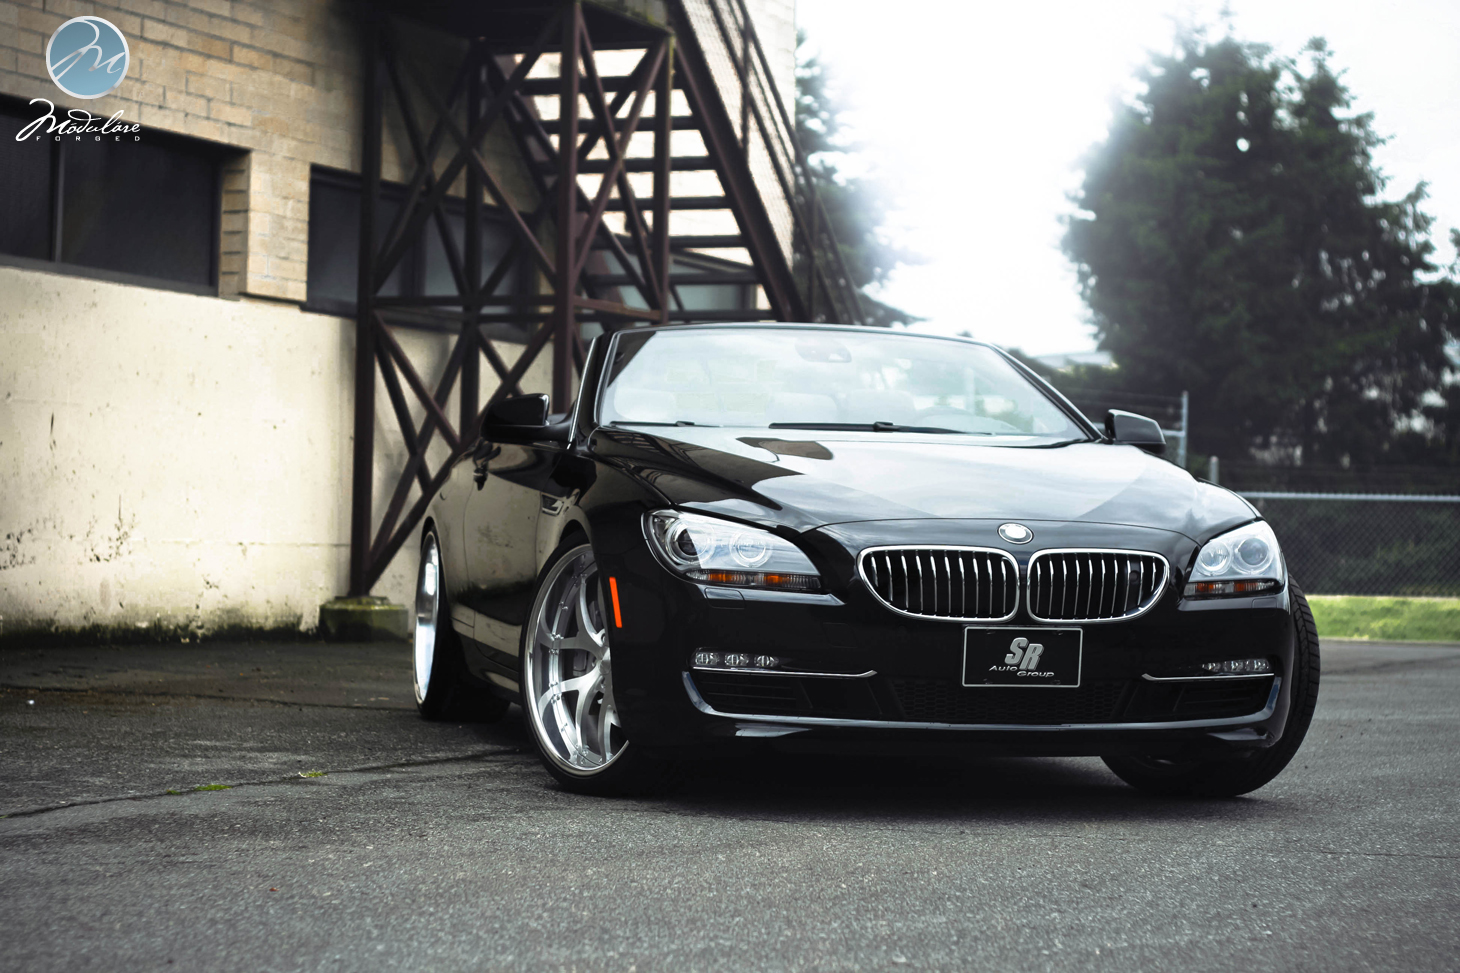 2010 Bmw 650i >> Professional shoot: all-new 2012 BMW 650i convertible with ...